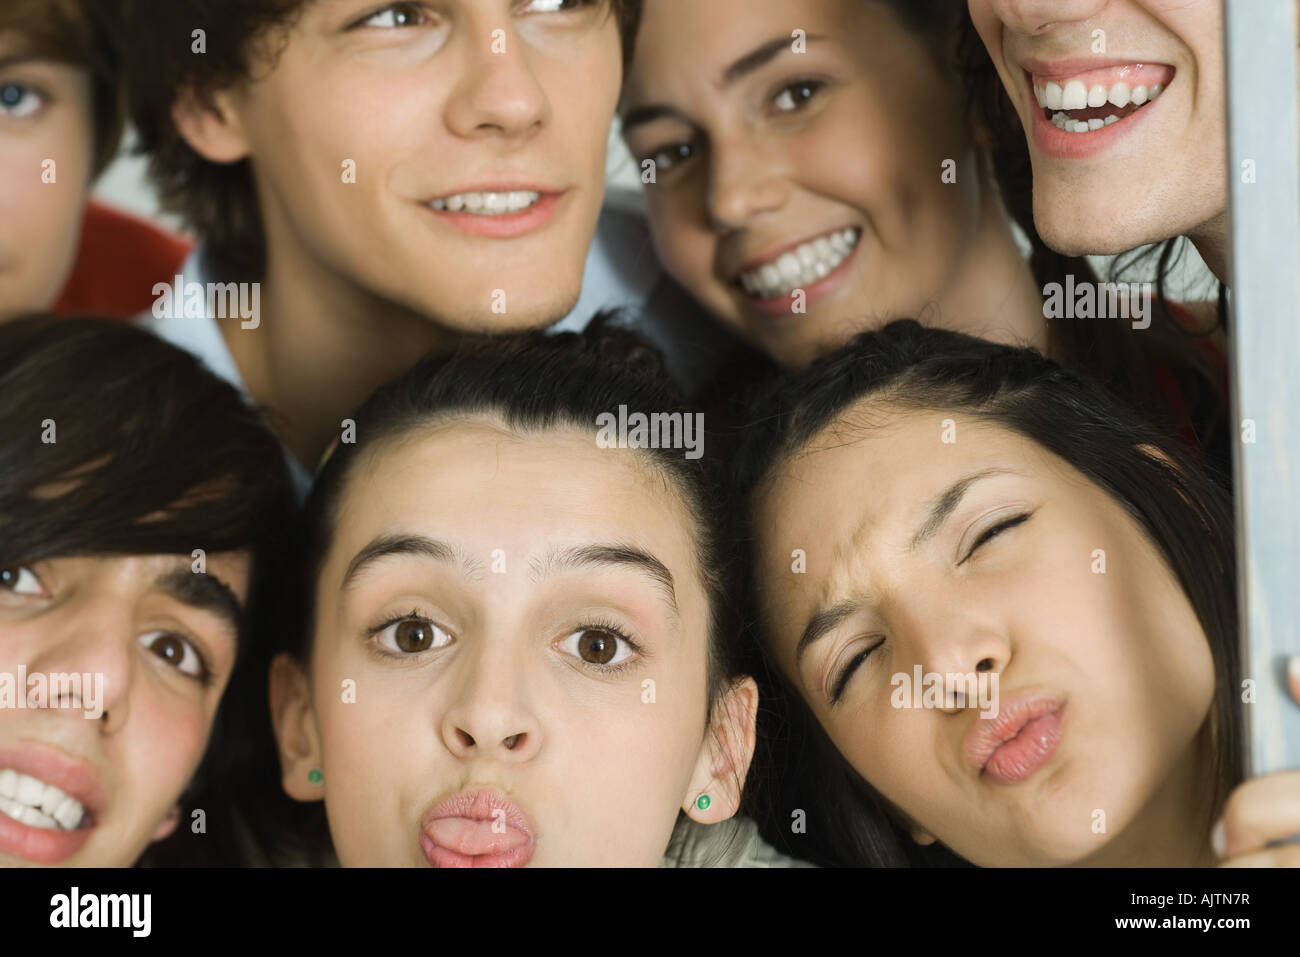 Group of young friends making faces at camera, cropped view - Stock Image